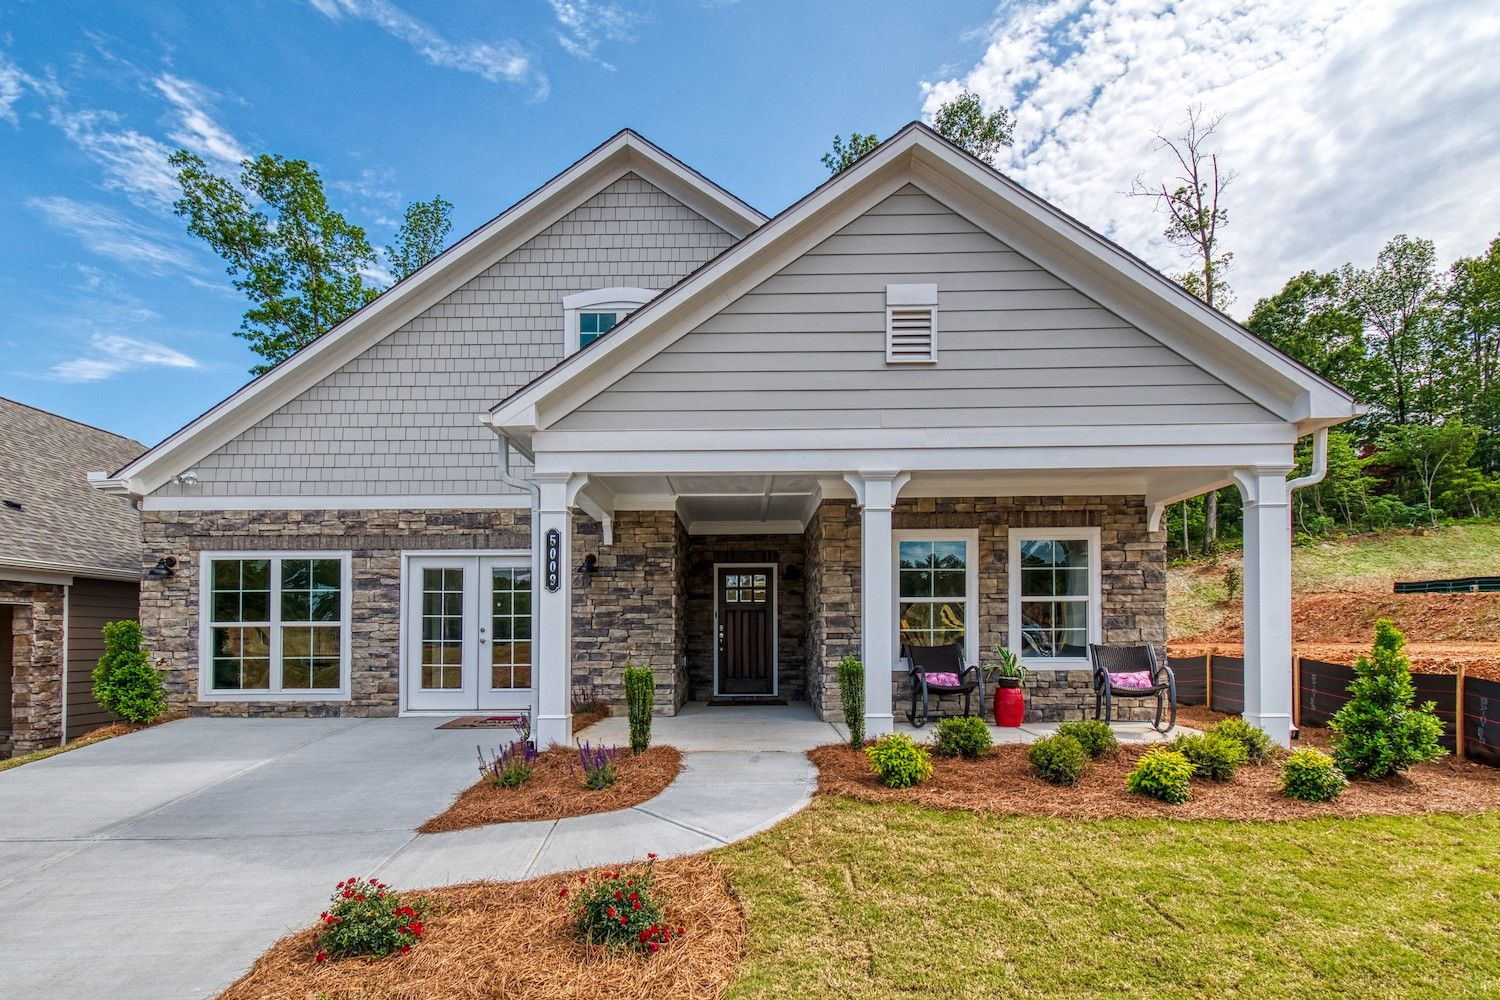 55 moreover done communities inwards cobb county